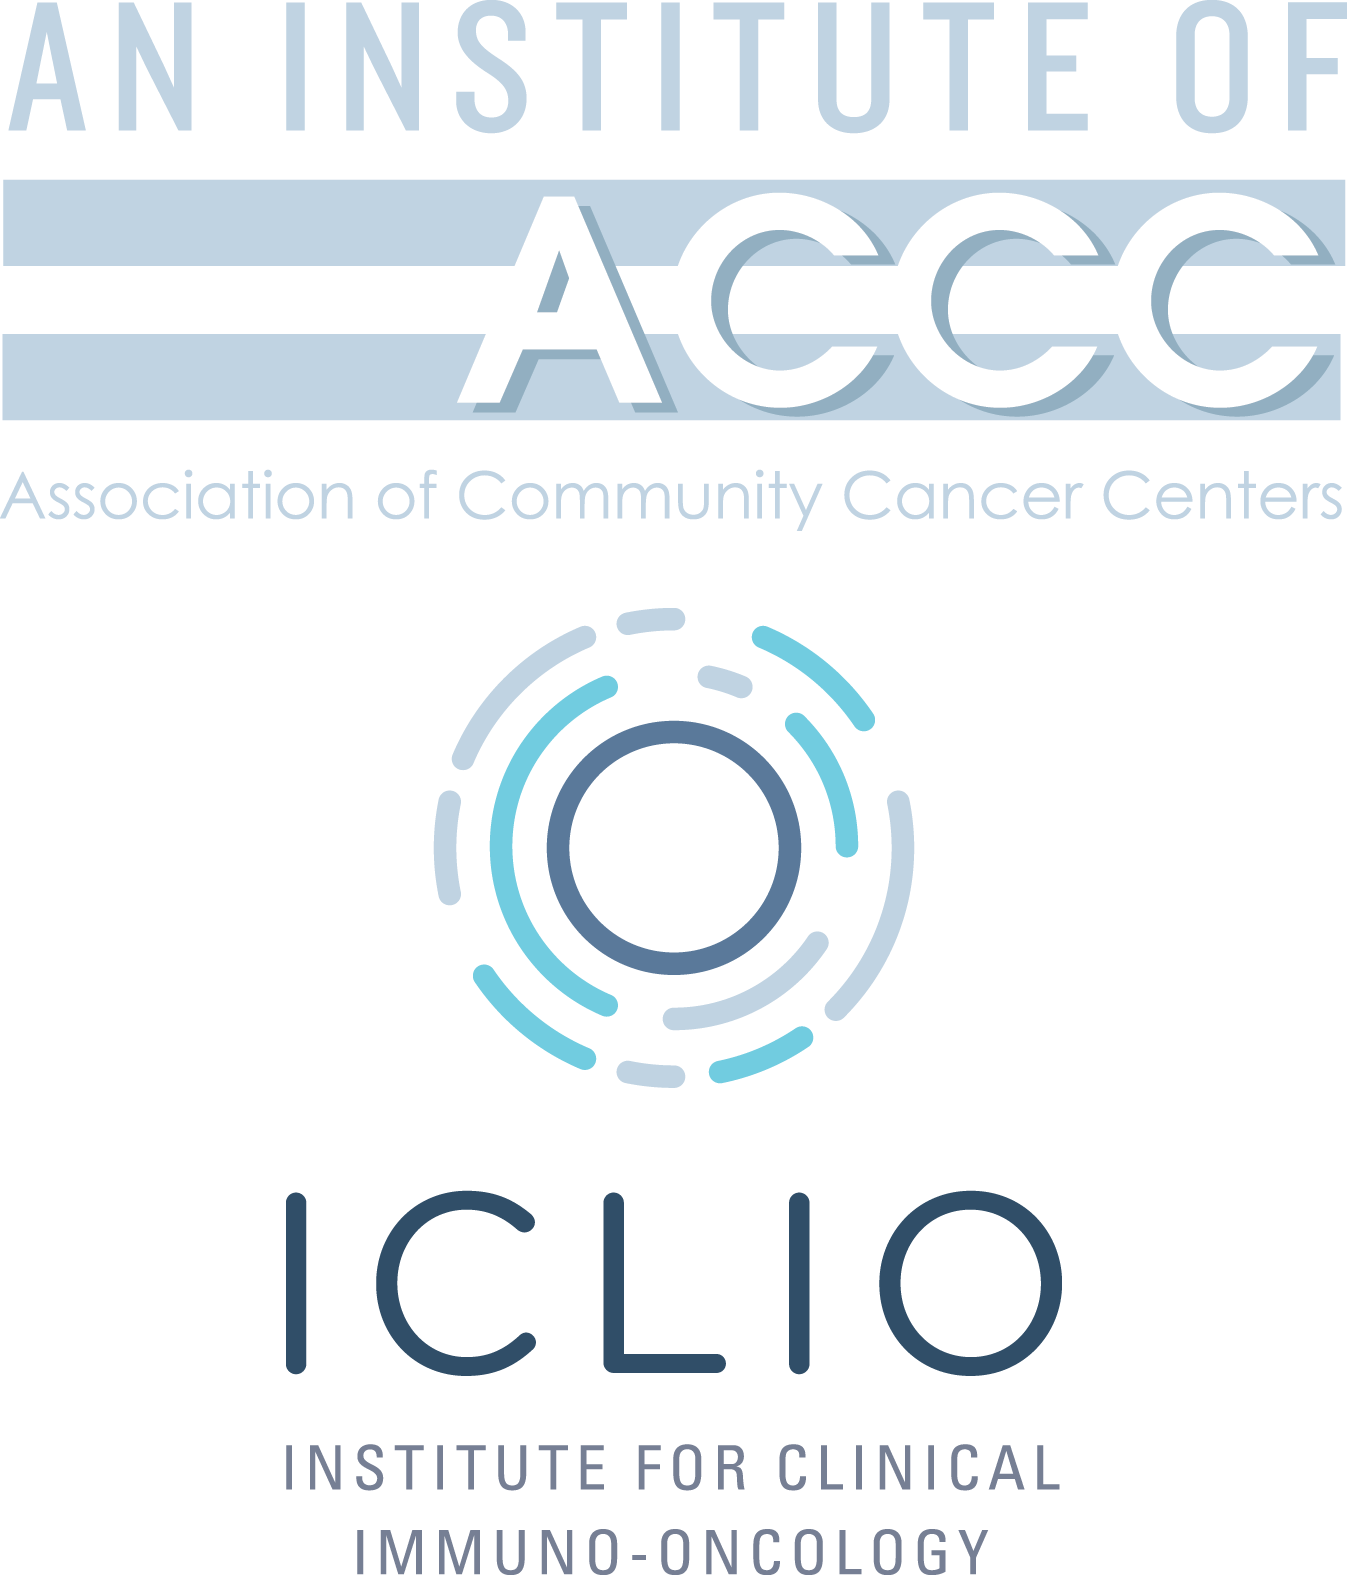 Institute for Clinical Immuno-Oncology (ICLIO) Delivers Immunotherapy Education in the Community Setting